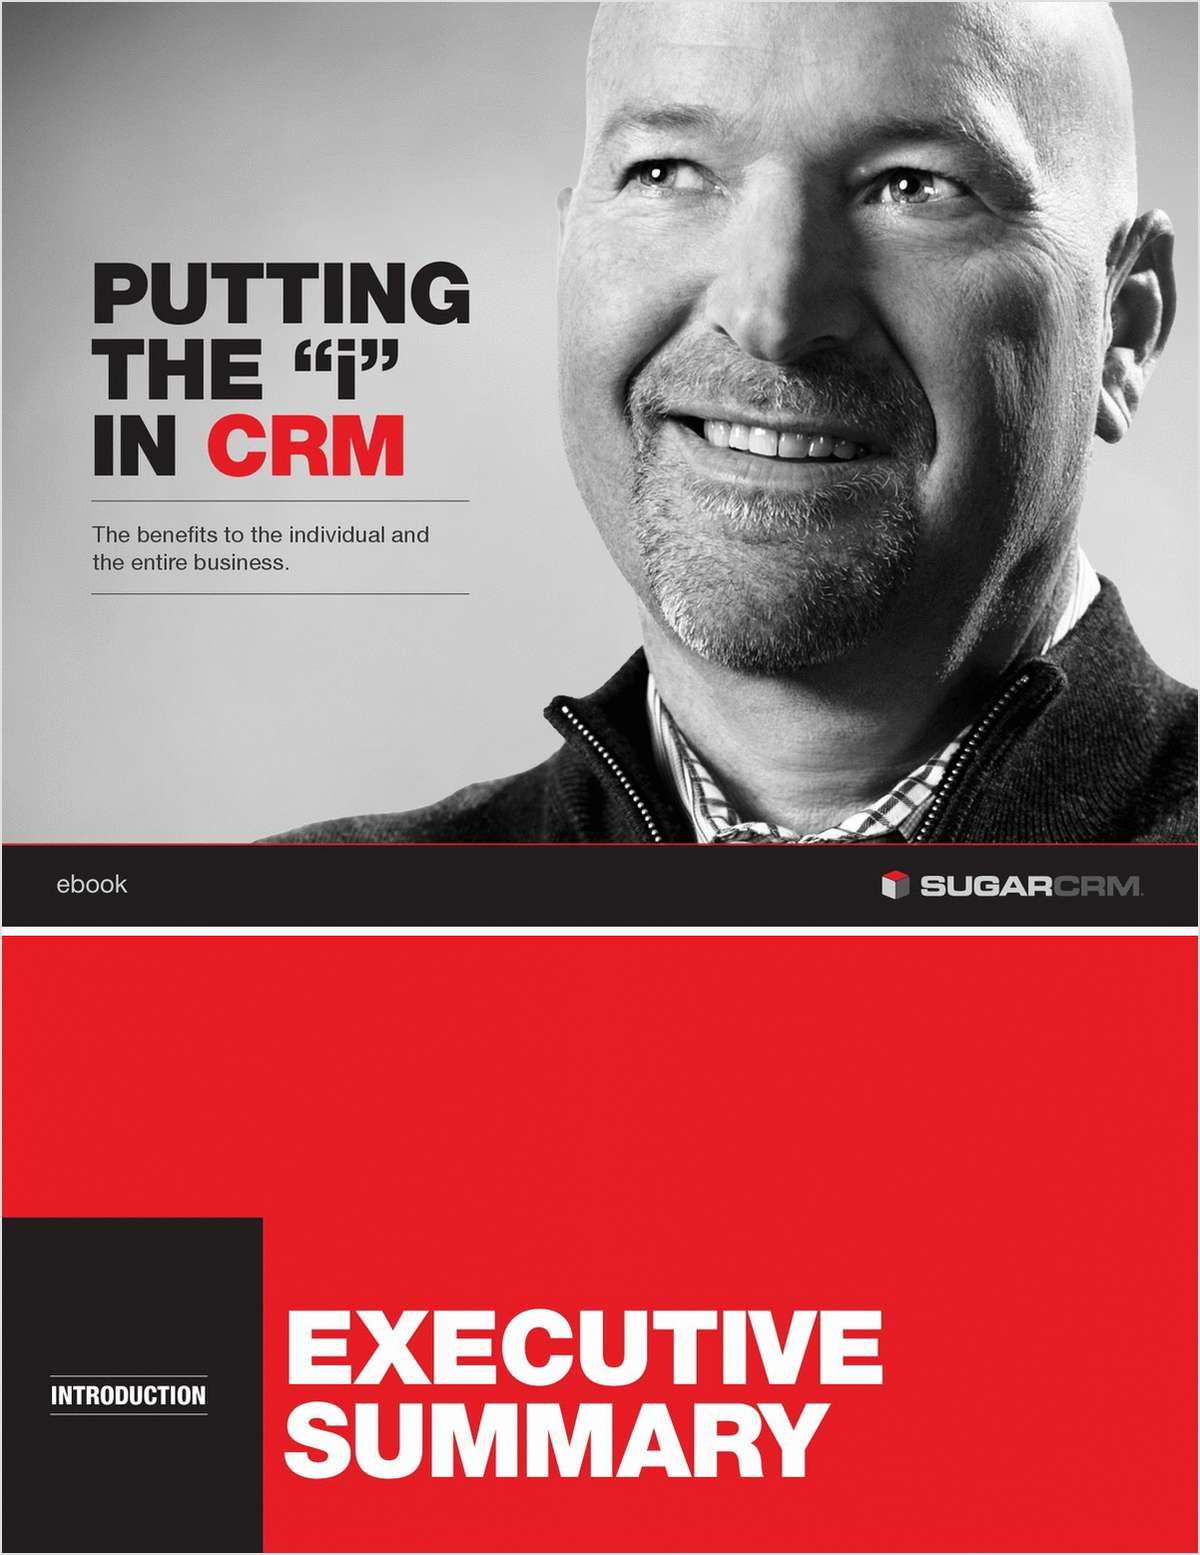 Delivering the True Potential of CRM Through the Individual